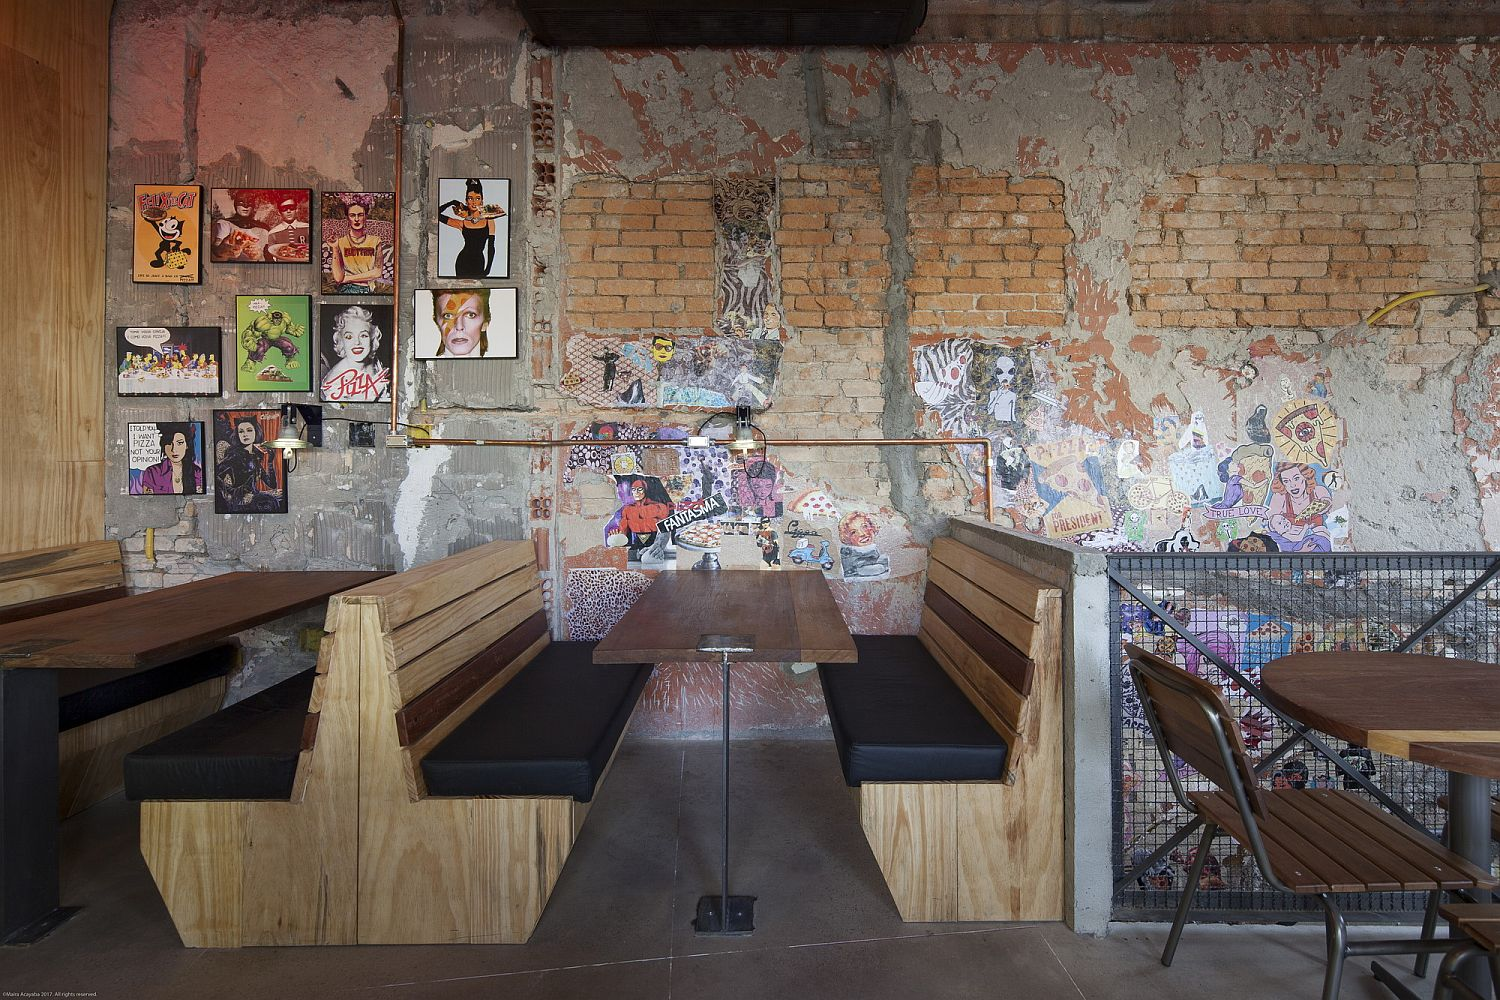 Weathered-walls-of-the-pizza-restaurant-with-framed-photographs-and-posters